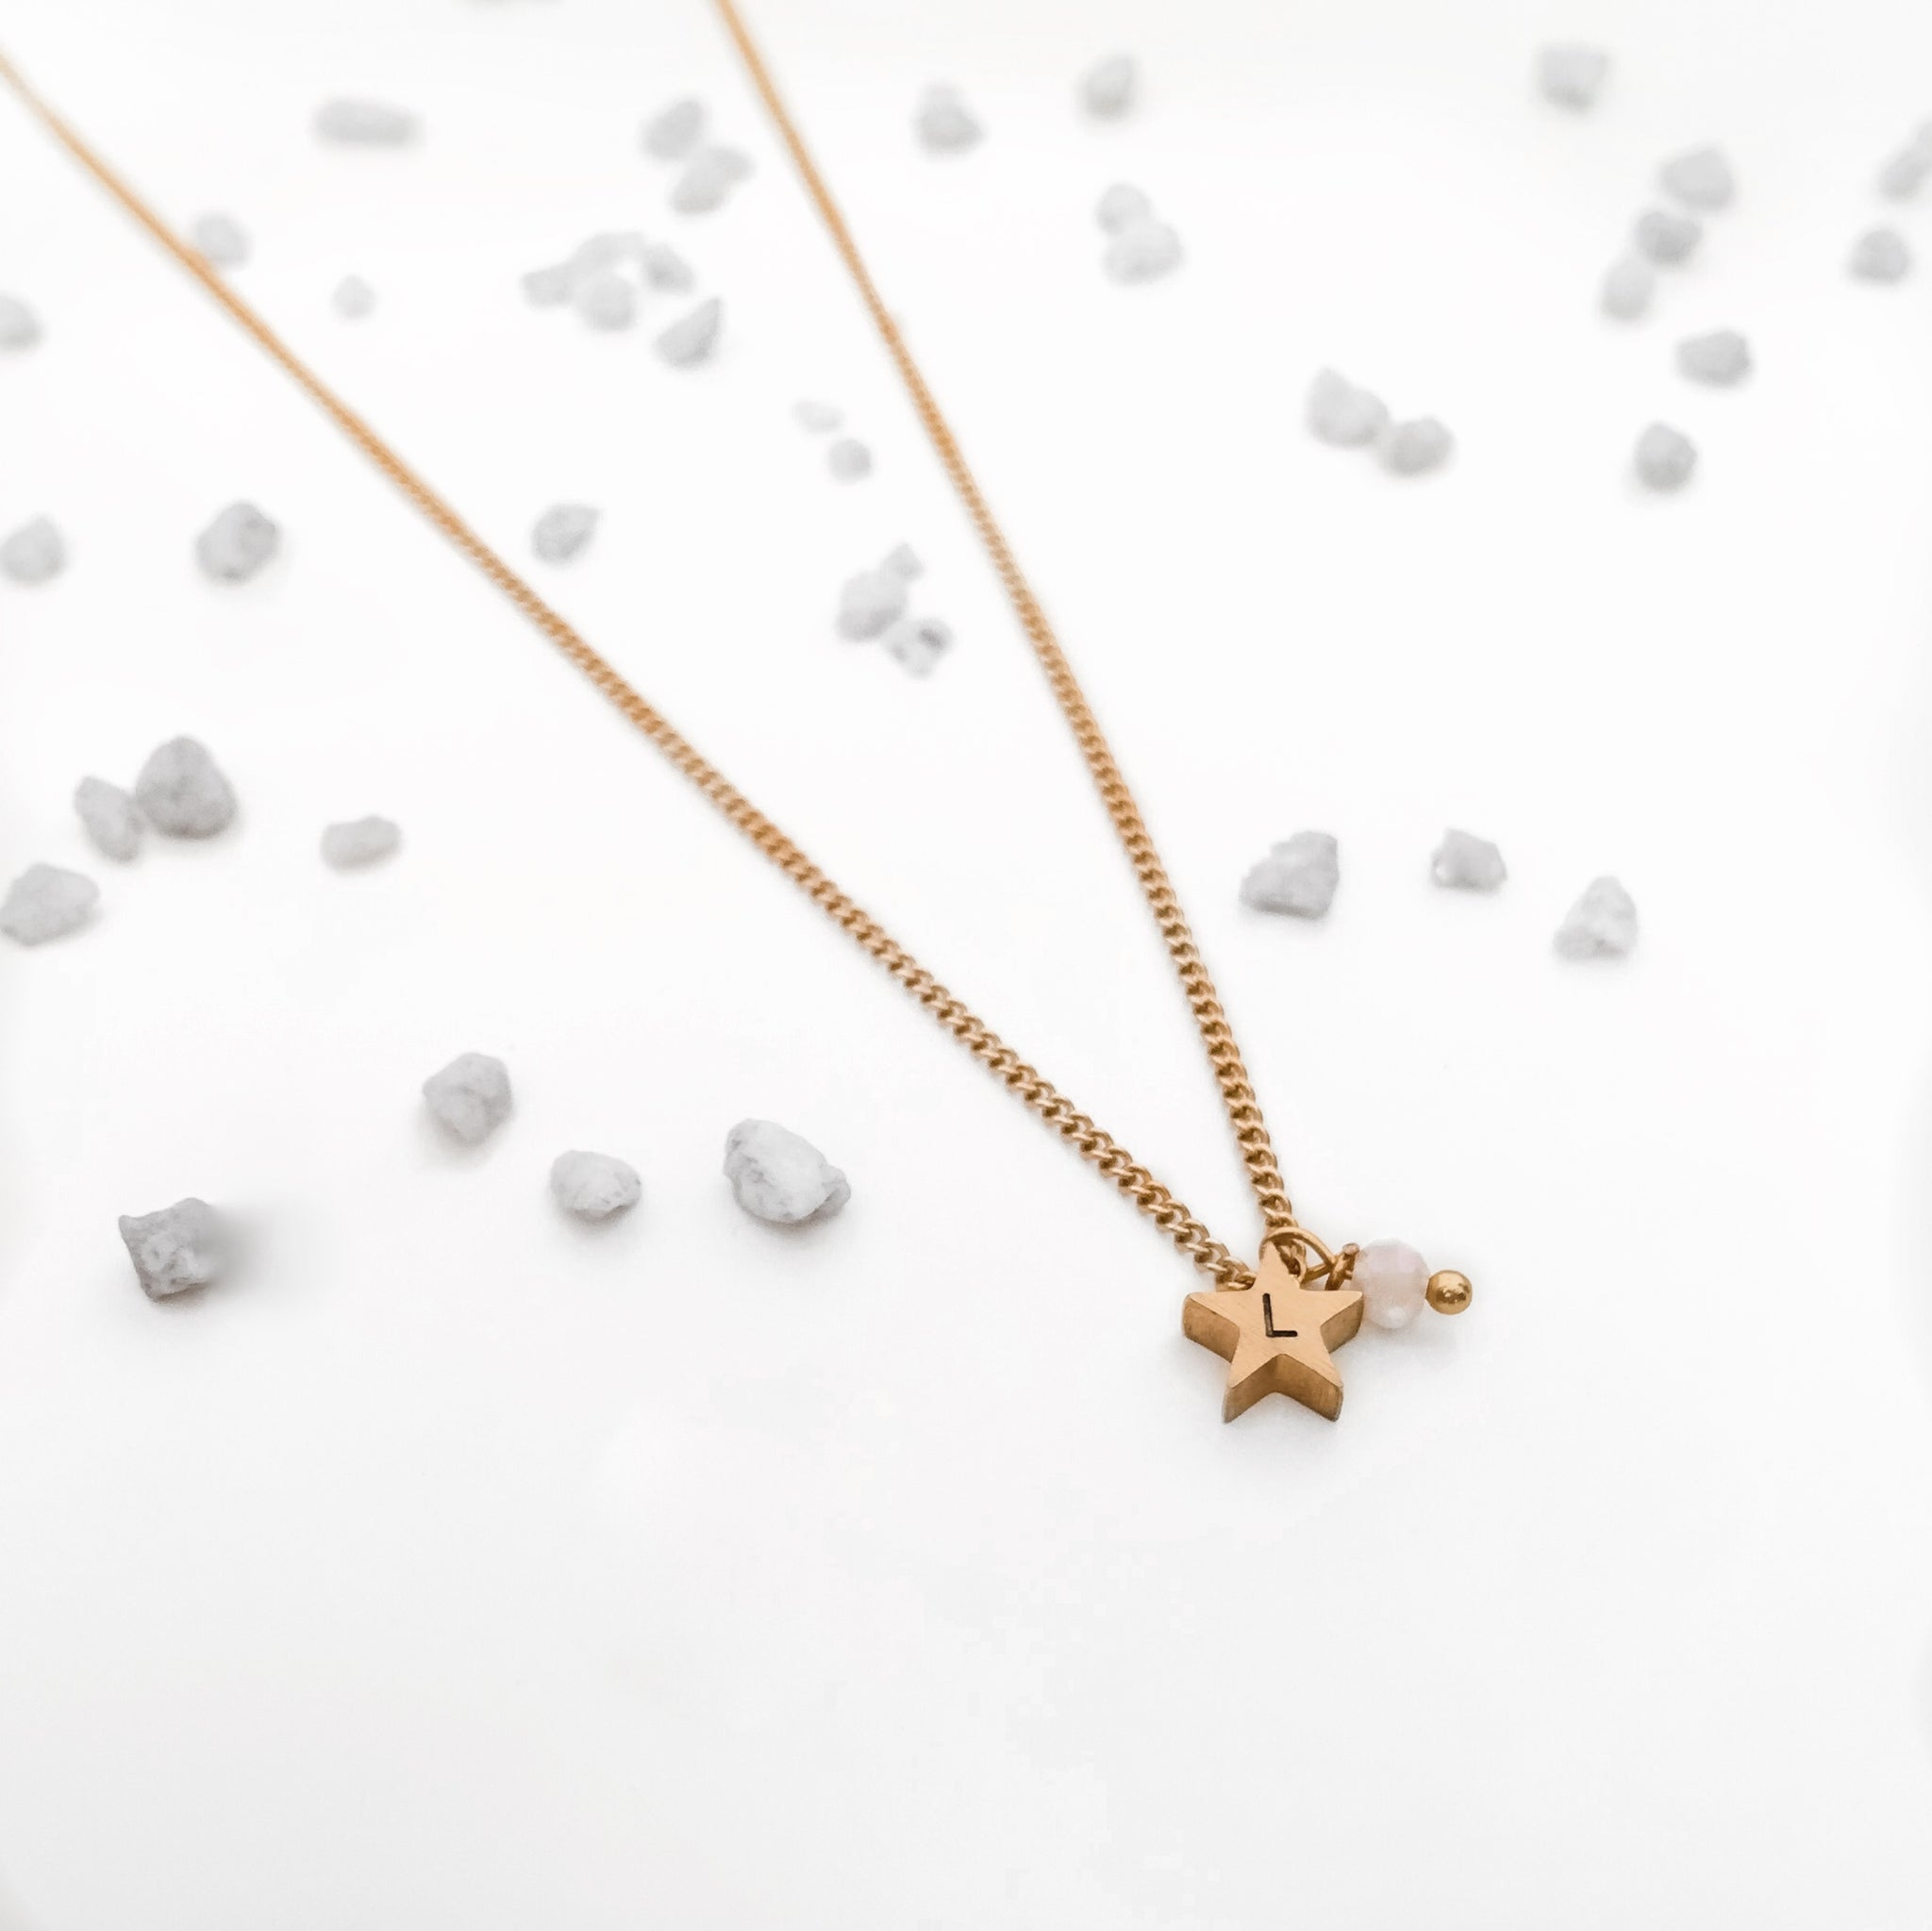 Initial Star Charm Necklace - By Nordvik